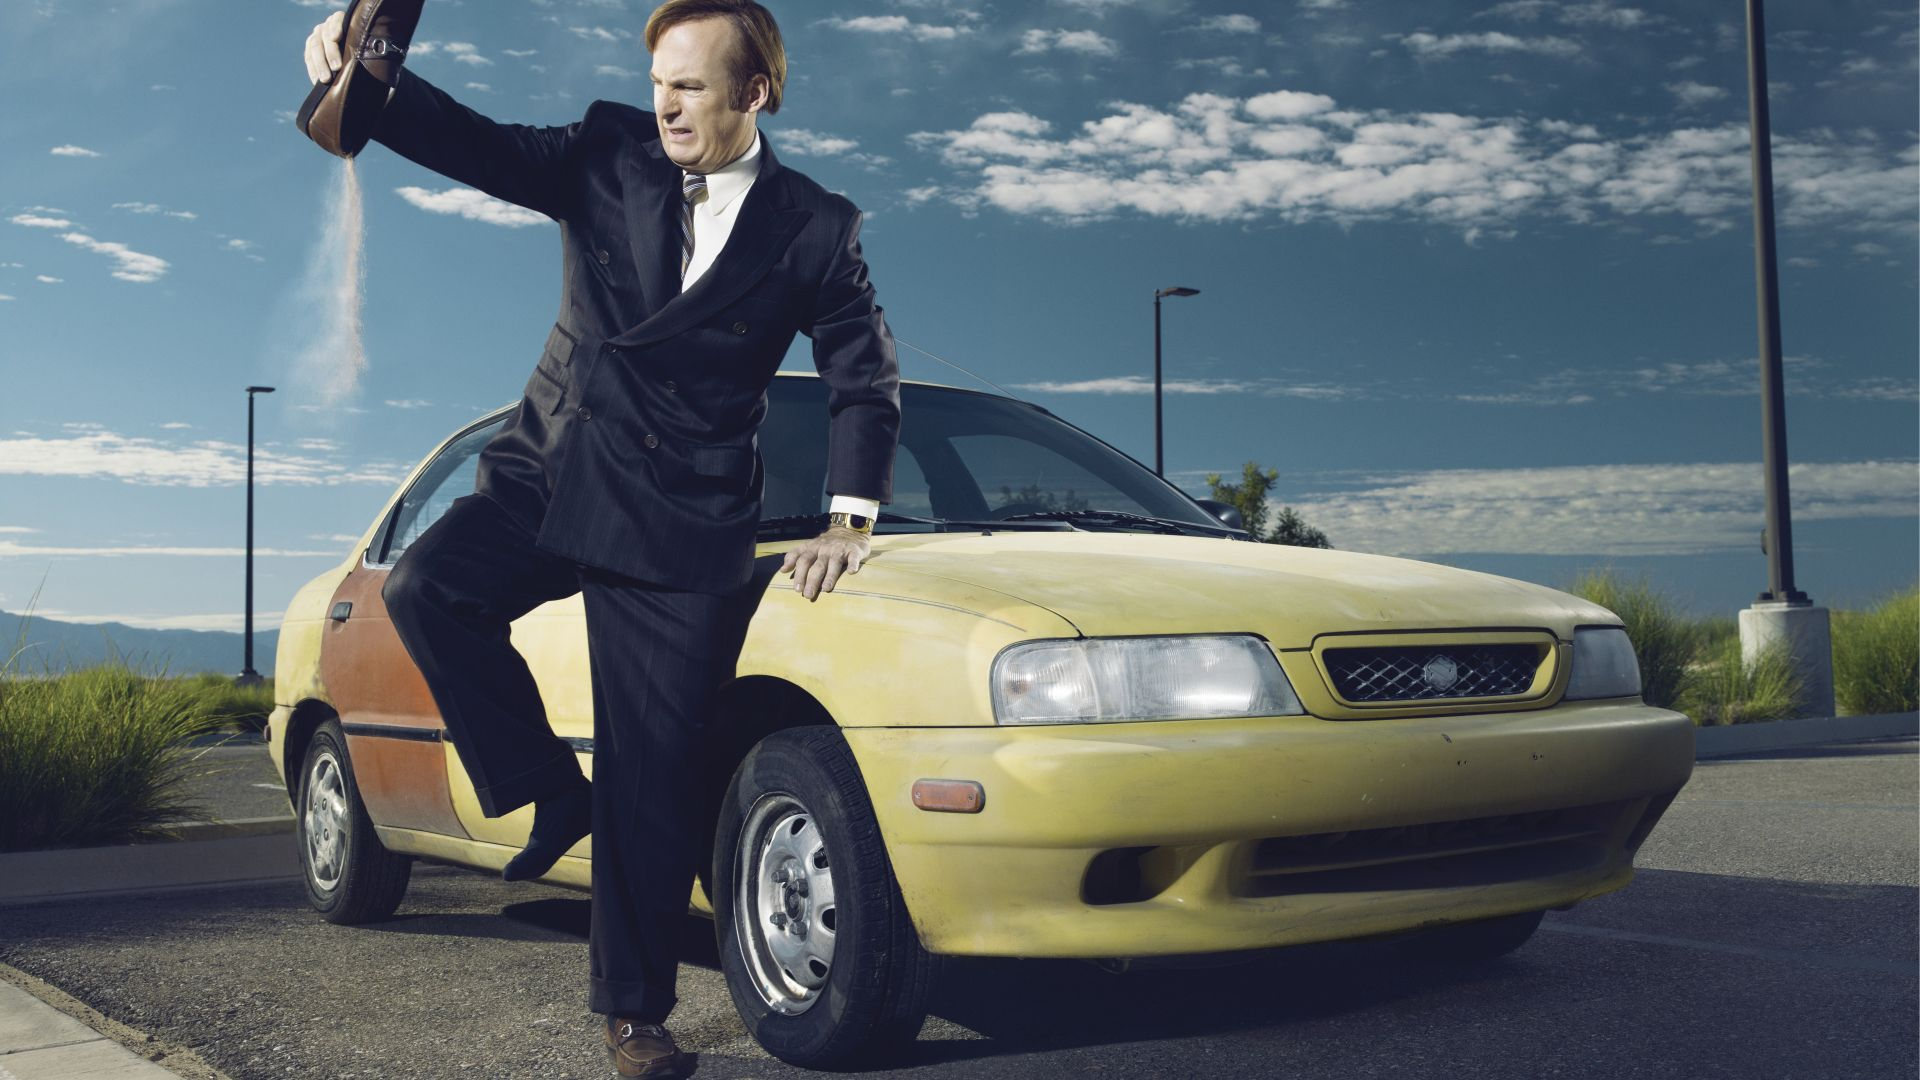 Better Call Saul, 2 season, Bob Odenkirk, best tv series of 2016 (horizontal)